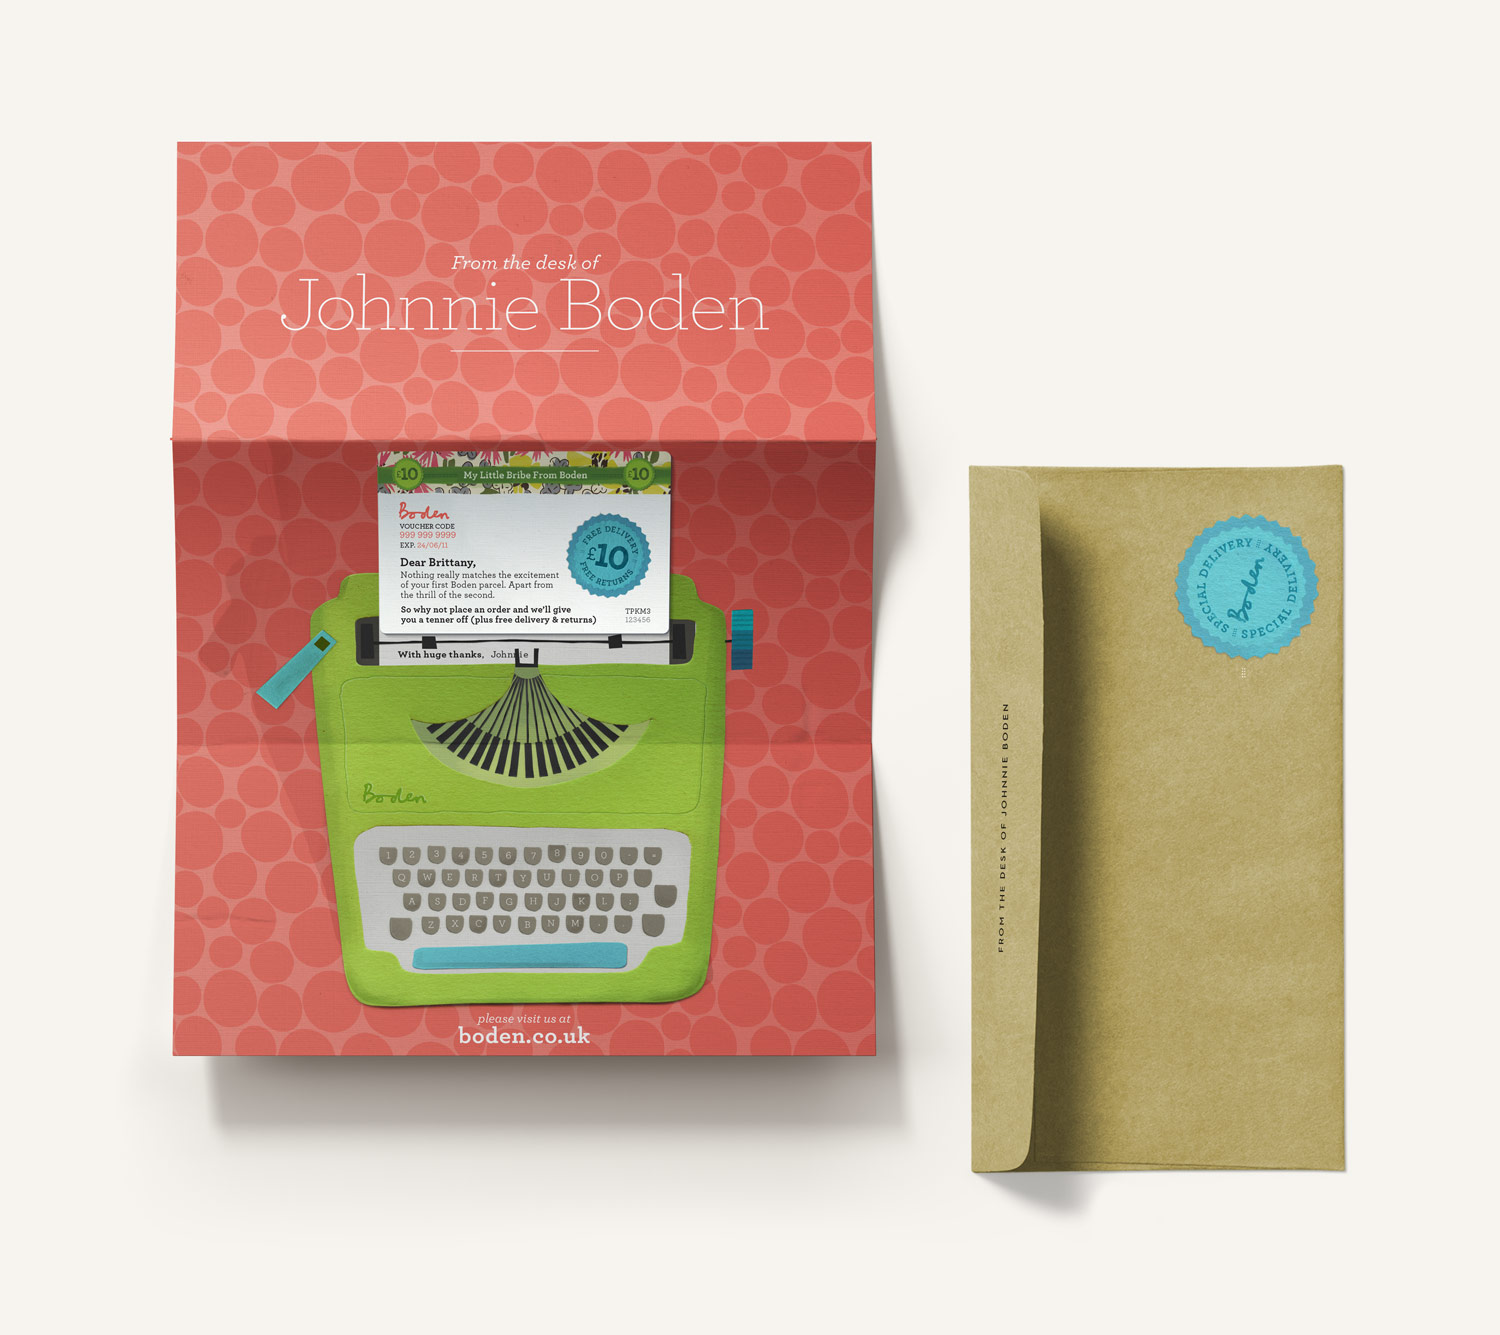 Boden discount gift card letter and envelope. Paper illustration of a typewriter holding a removable card. Design by Brittany Hurdle